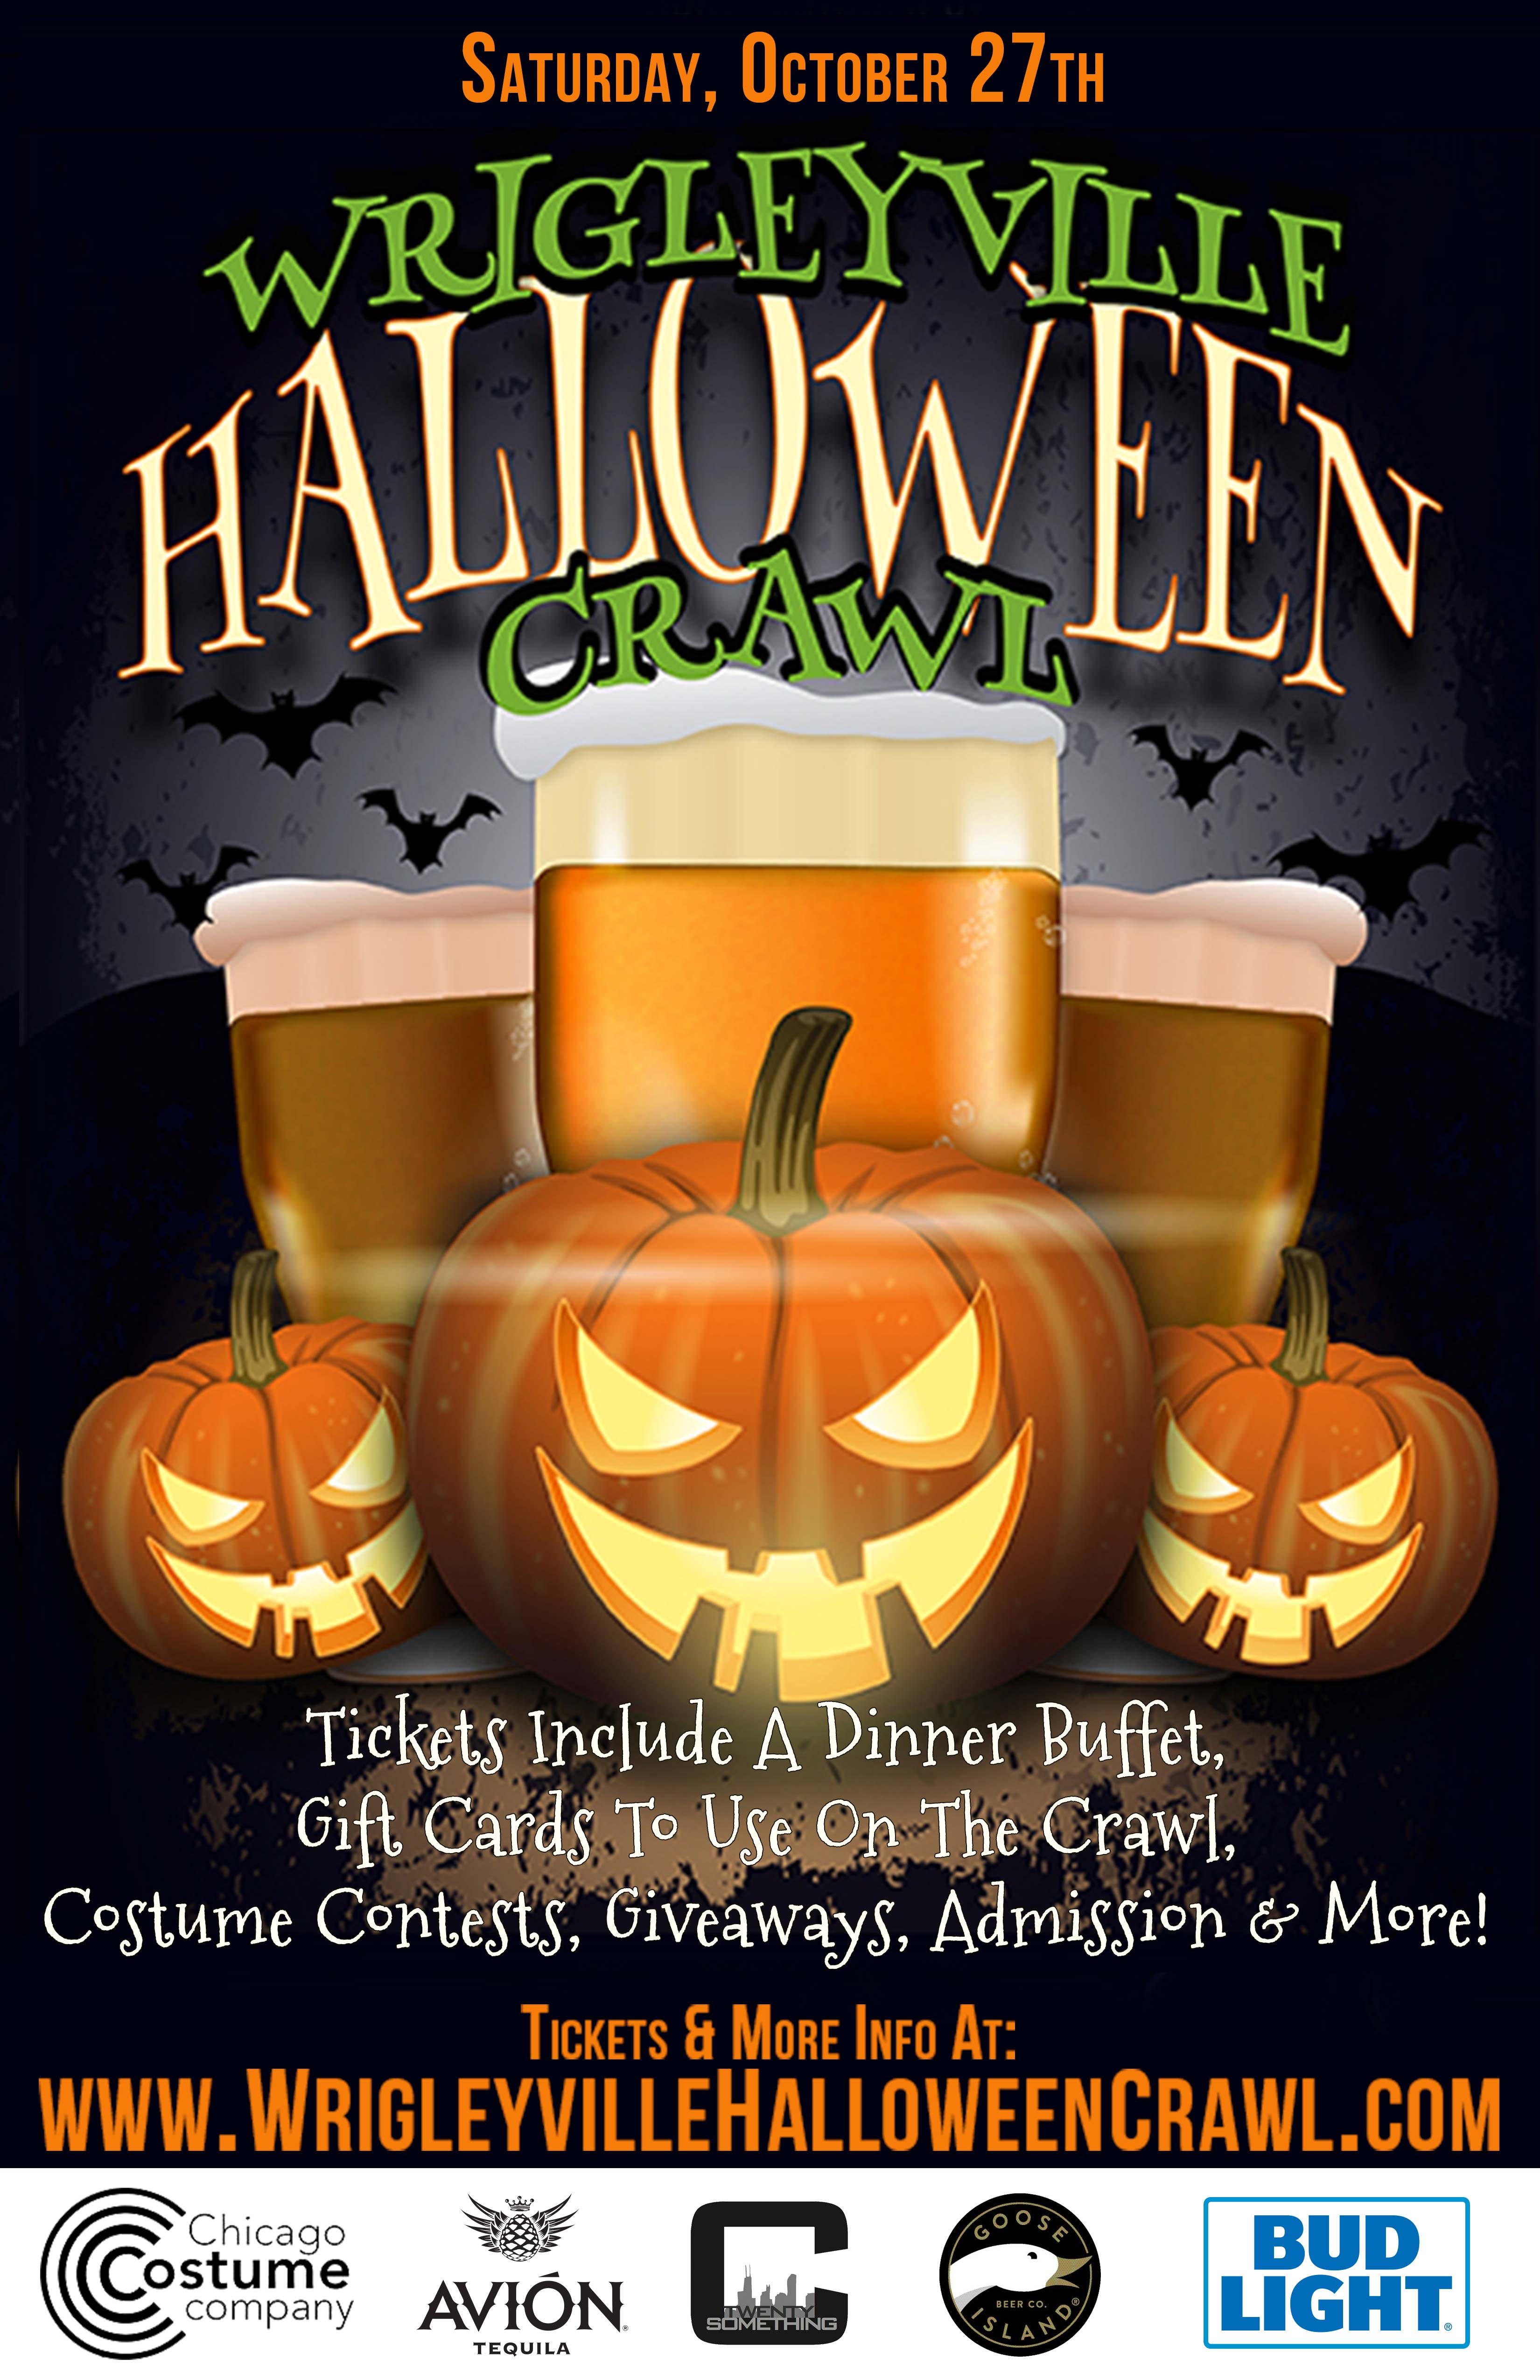 Wrigleyville Halloween Bar Crawl in Chicago - Tickets include admission, a dinner buffet, gift cards to use on the crawl, costume contests, giveaways & MORE!